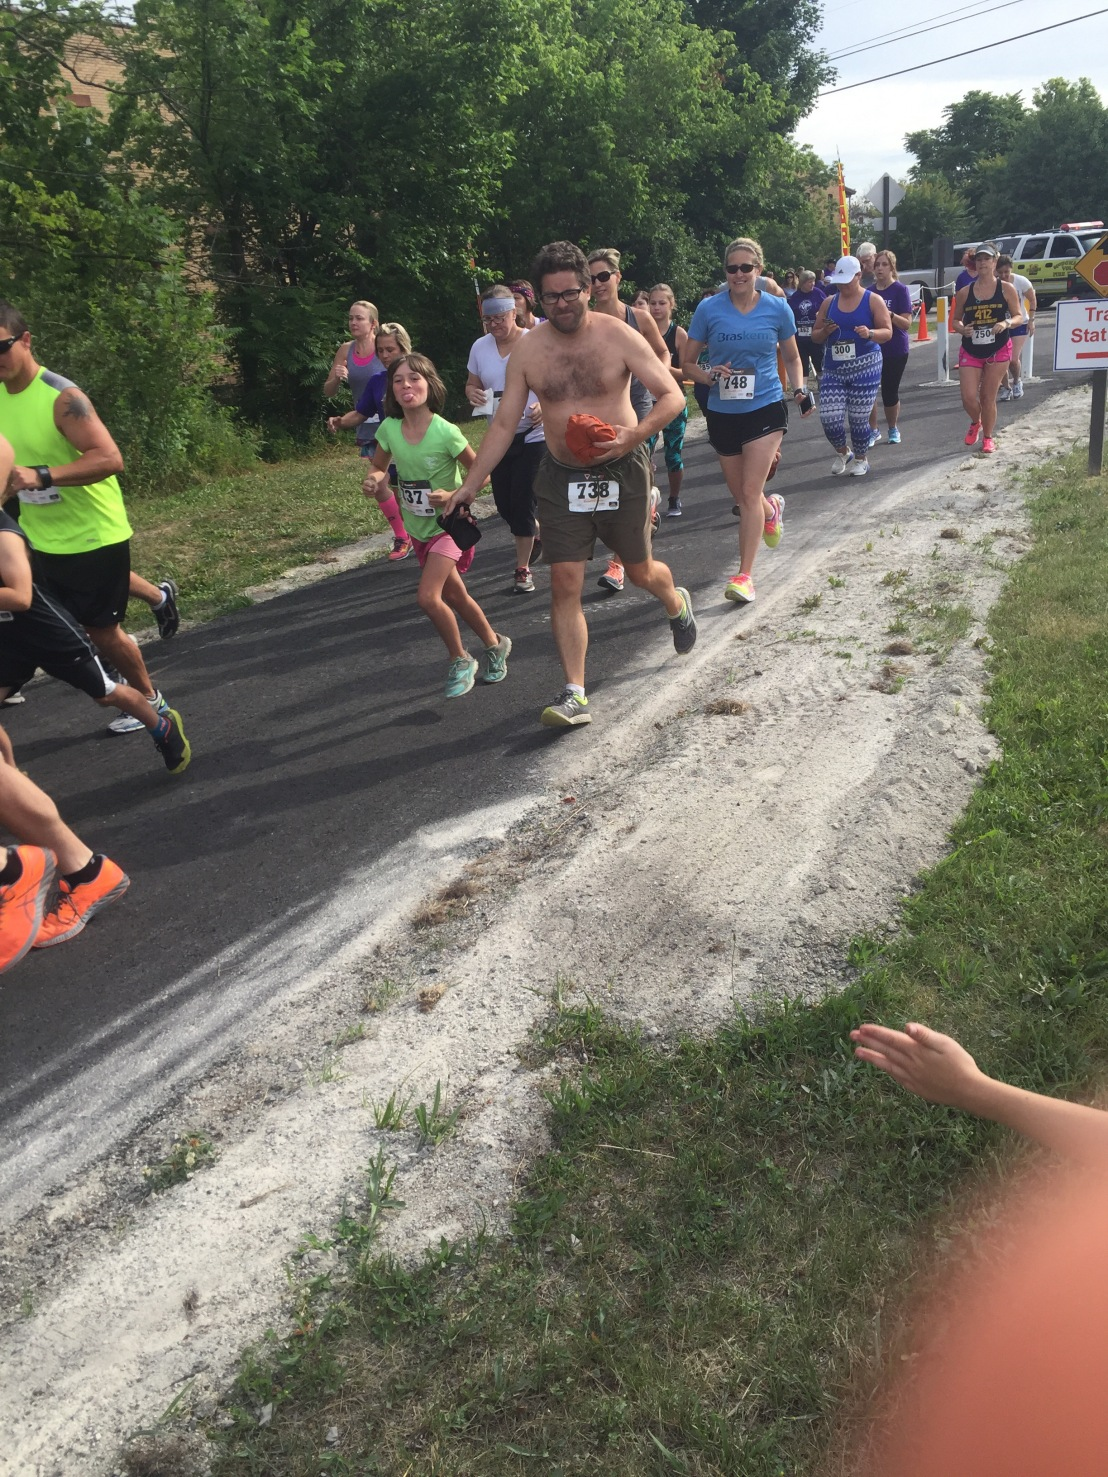 Race recap: McRun 5k photo essay